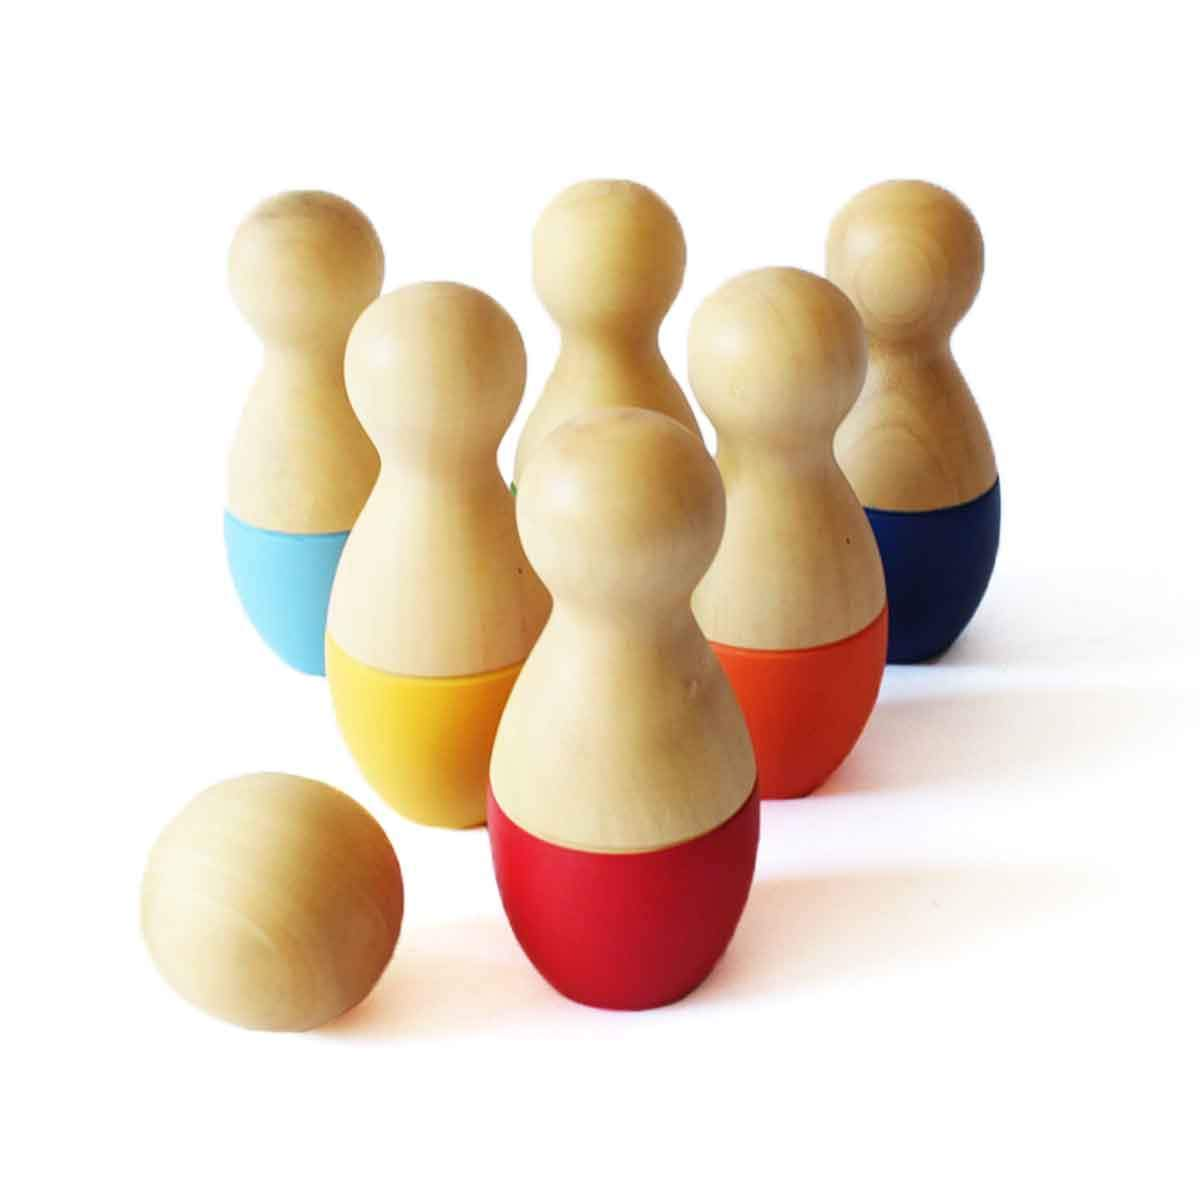 Shumee Wooden Roly Bowly Pins Toy Set (2 Years+) - Entertainment & Learning product image